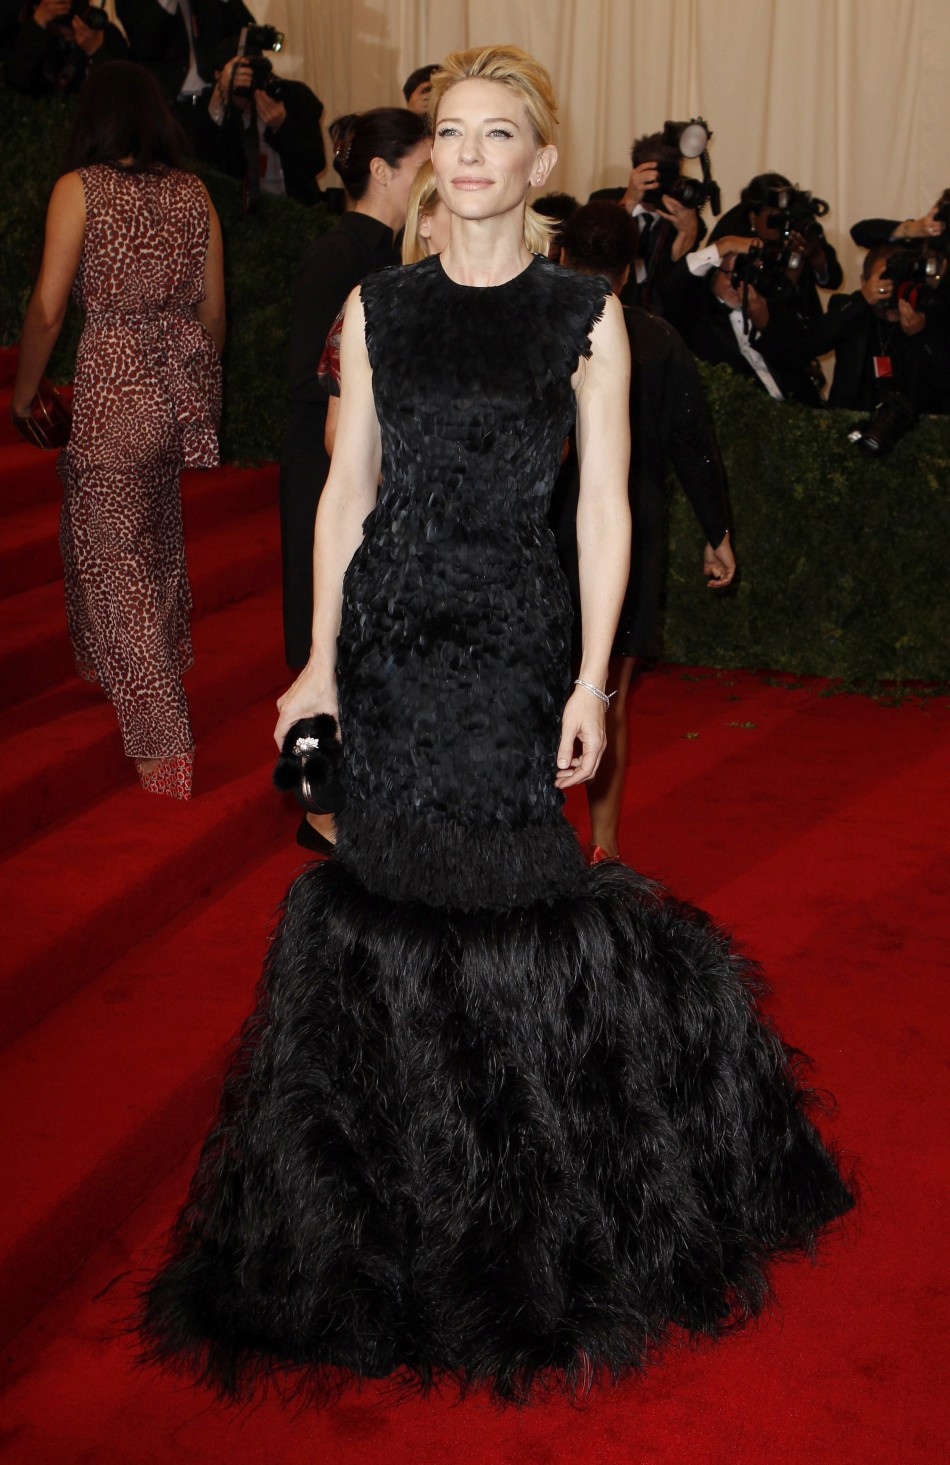 Cate Blanchett at the MET Gala Costume Benefit